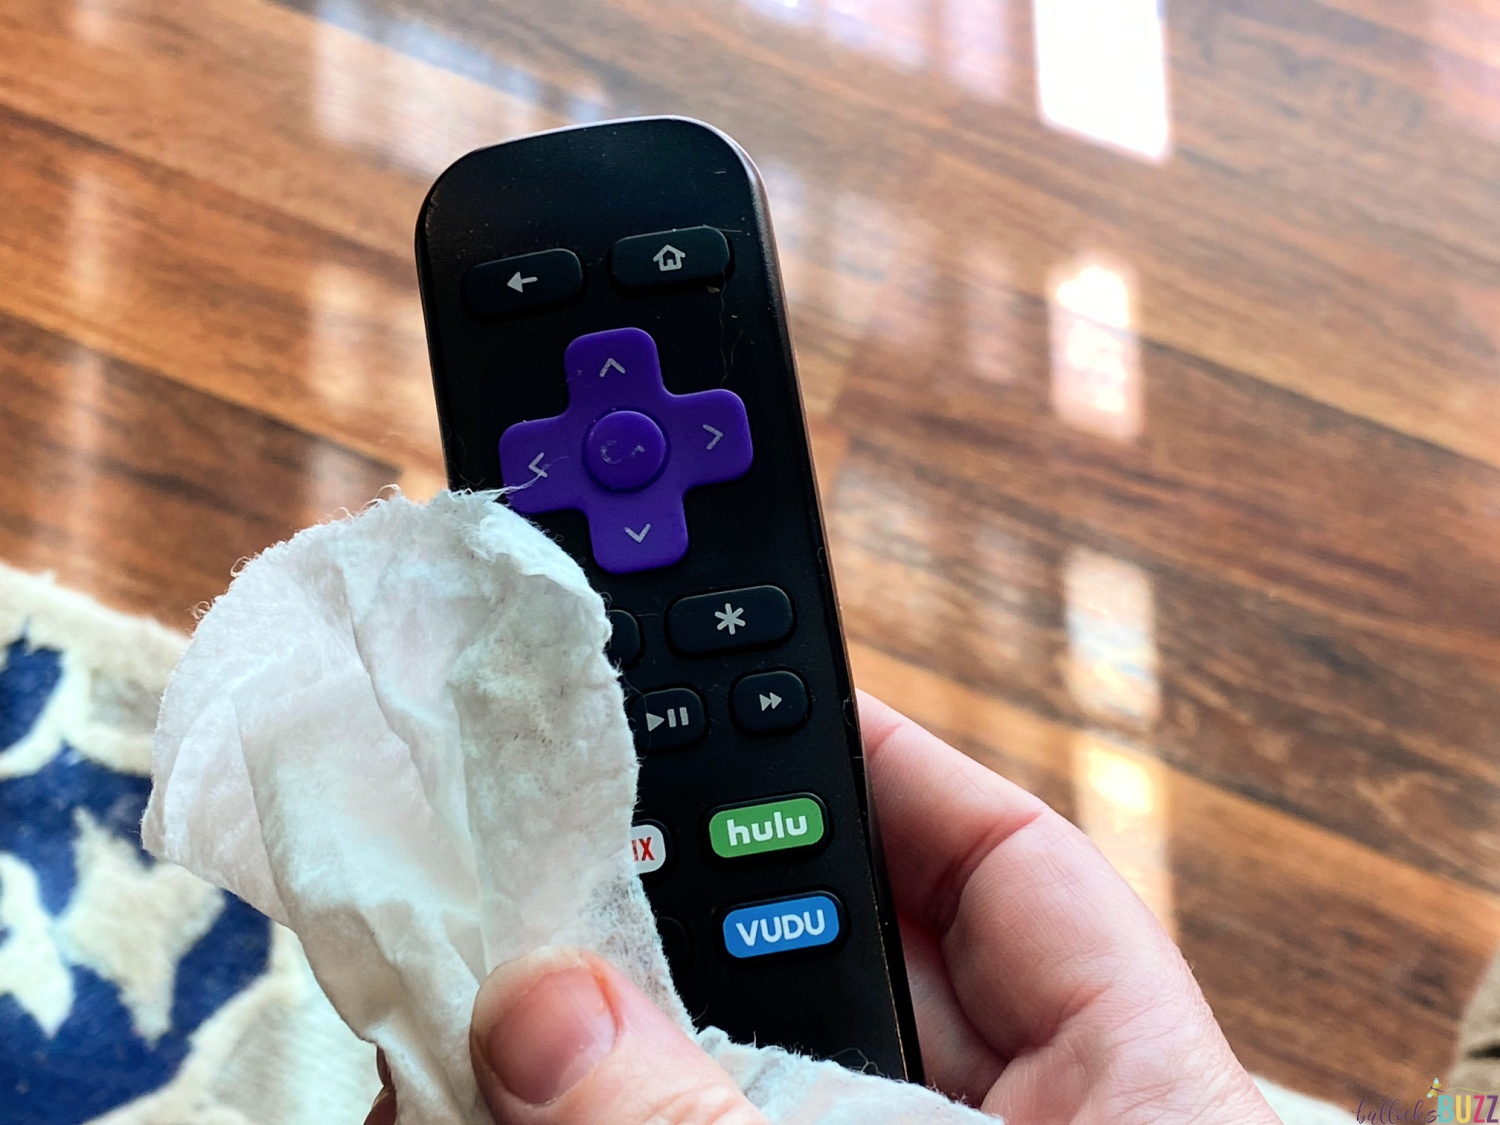 disinfecting wipes are safe to use on electronics like this remote